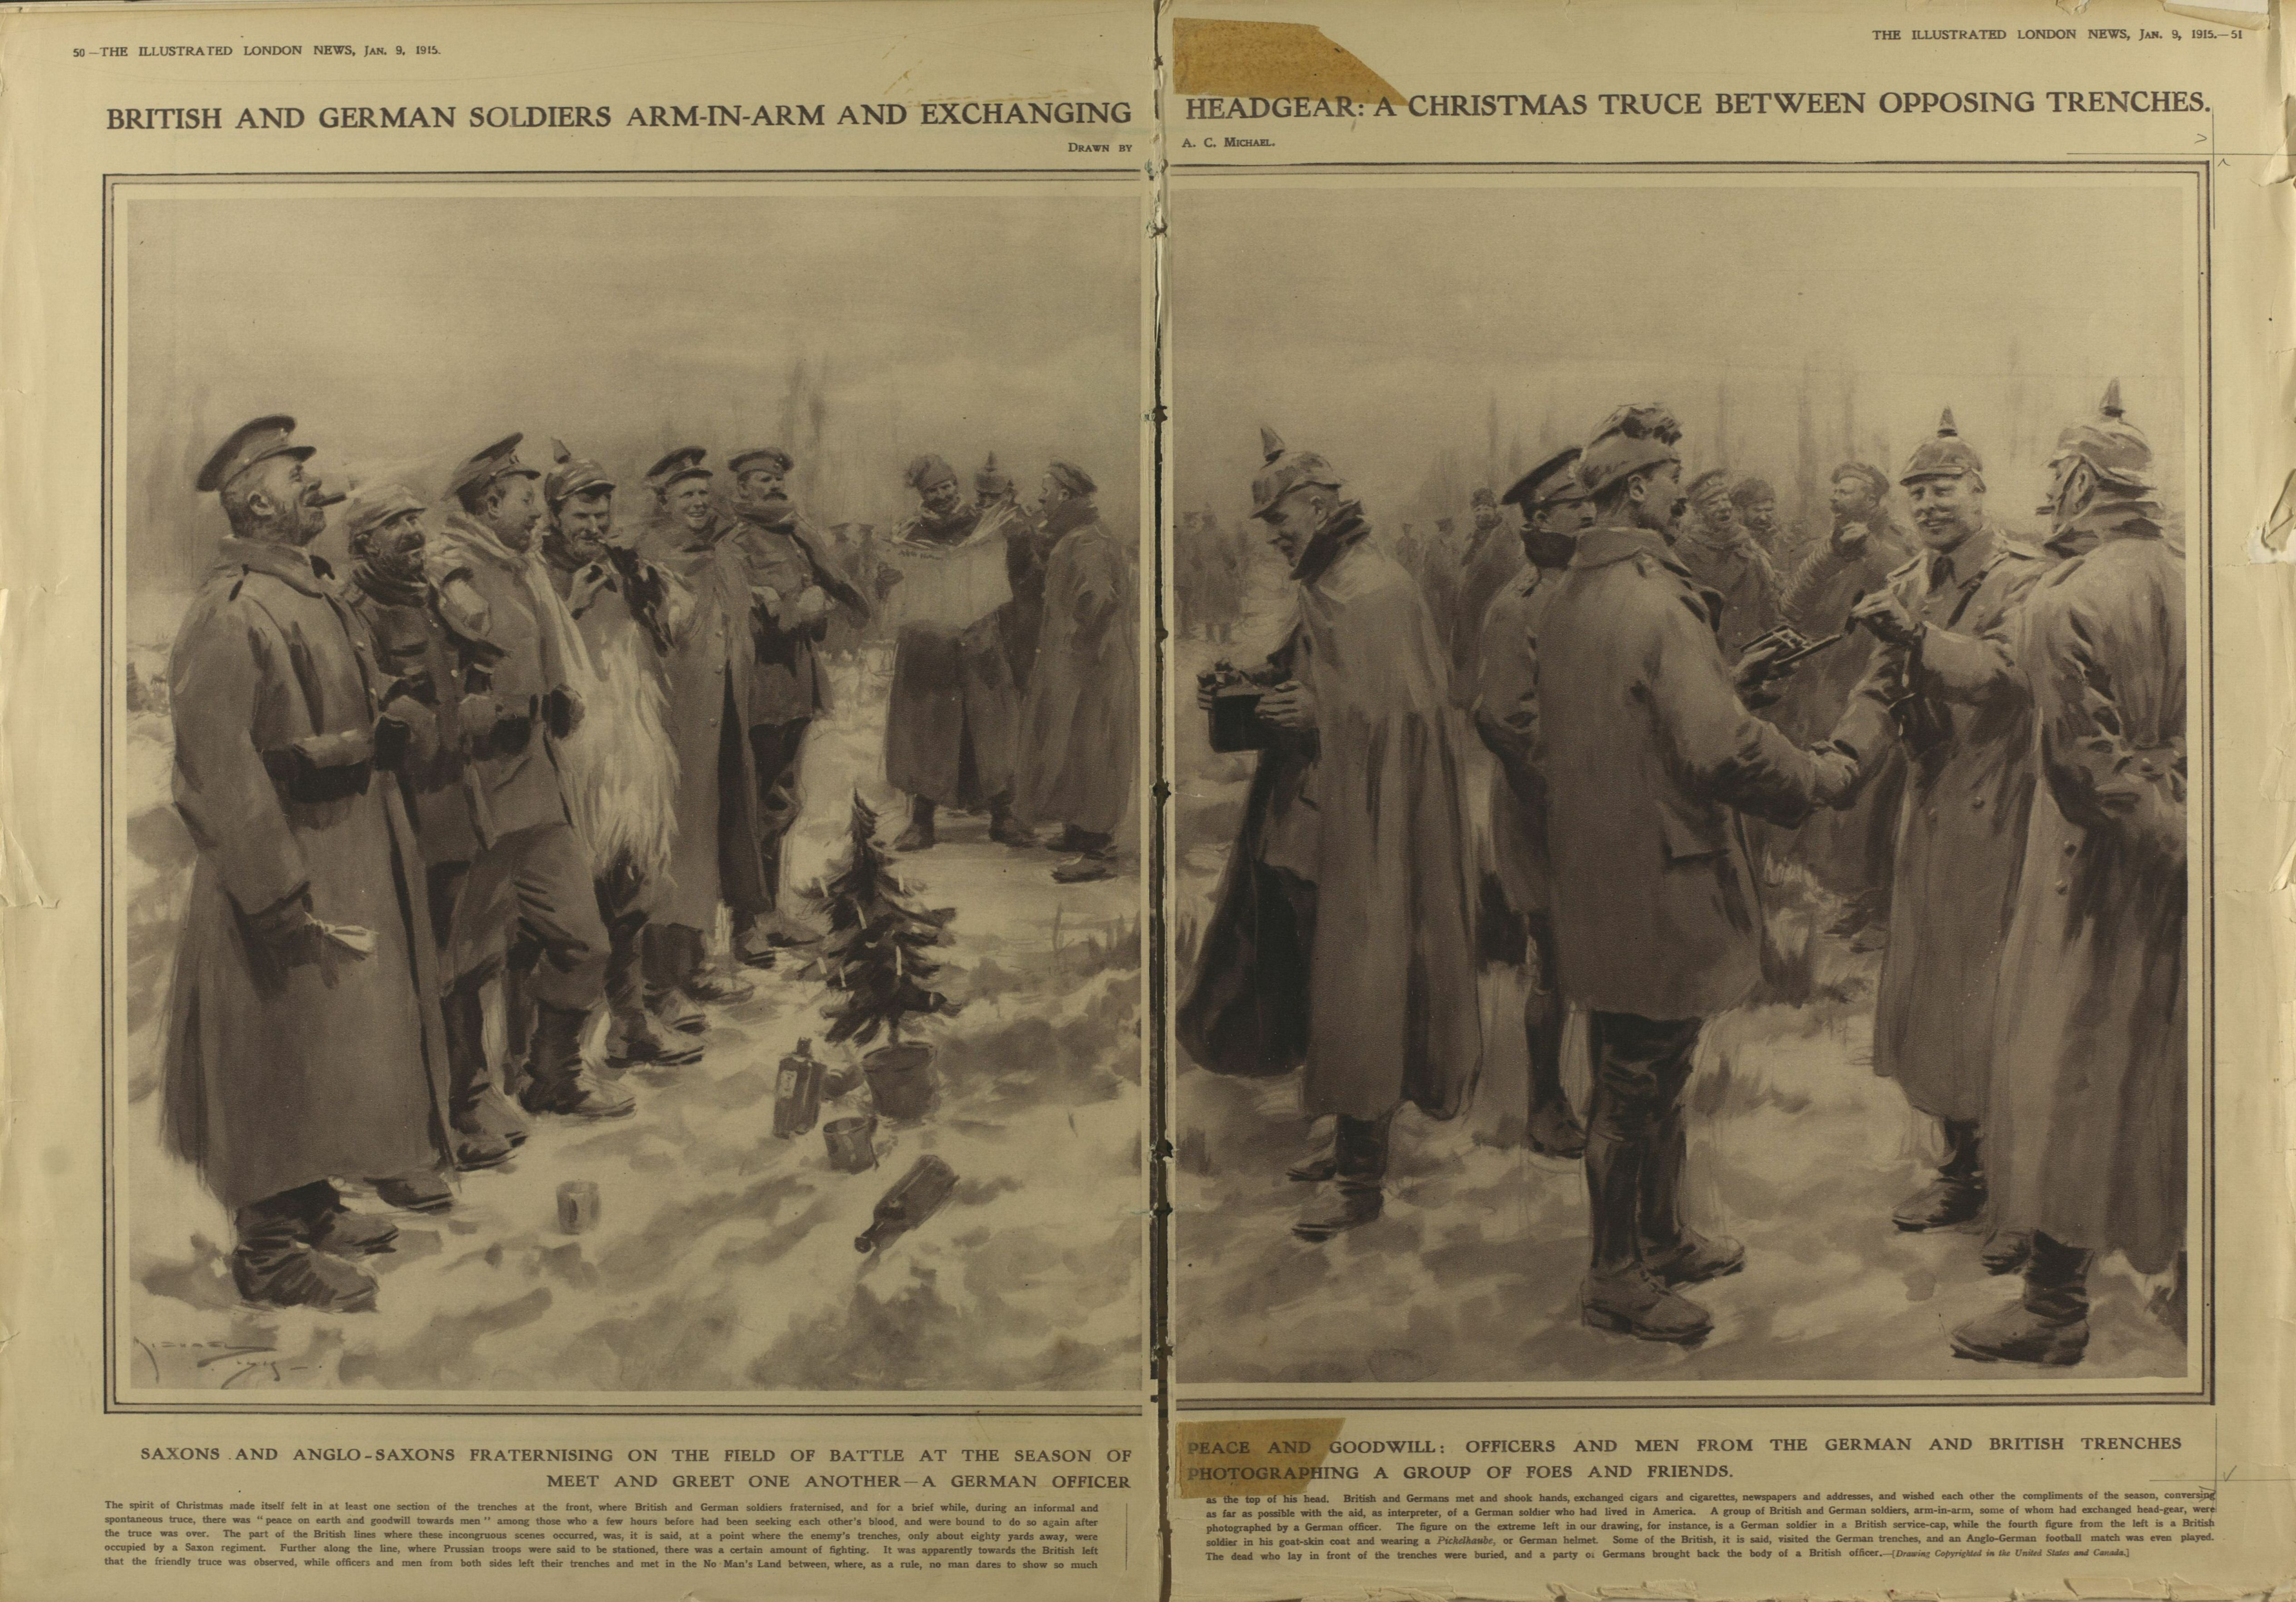 Newspaper Coverage From the Christmas Truce 1914